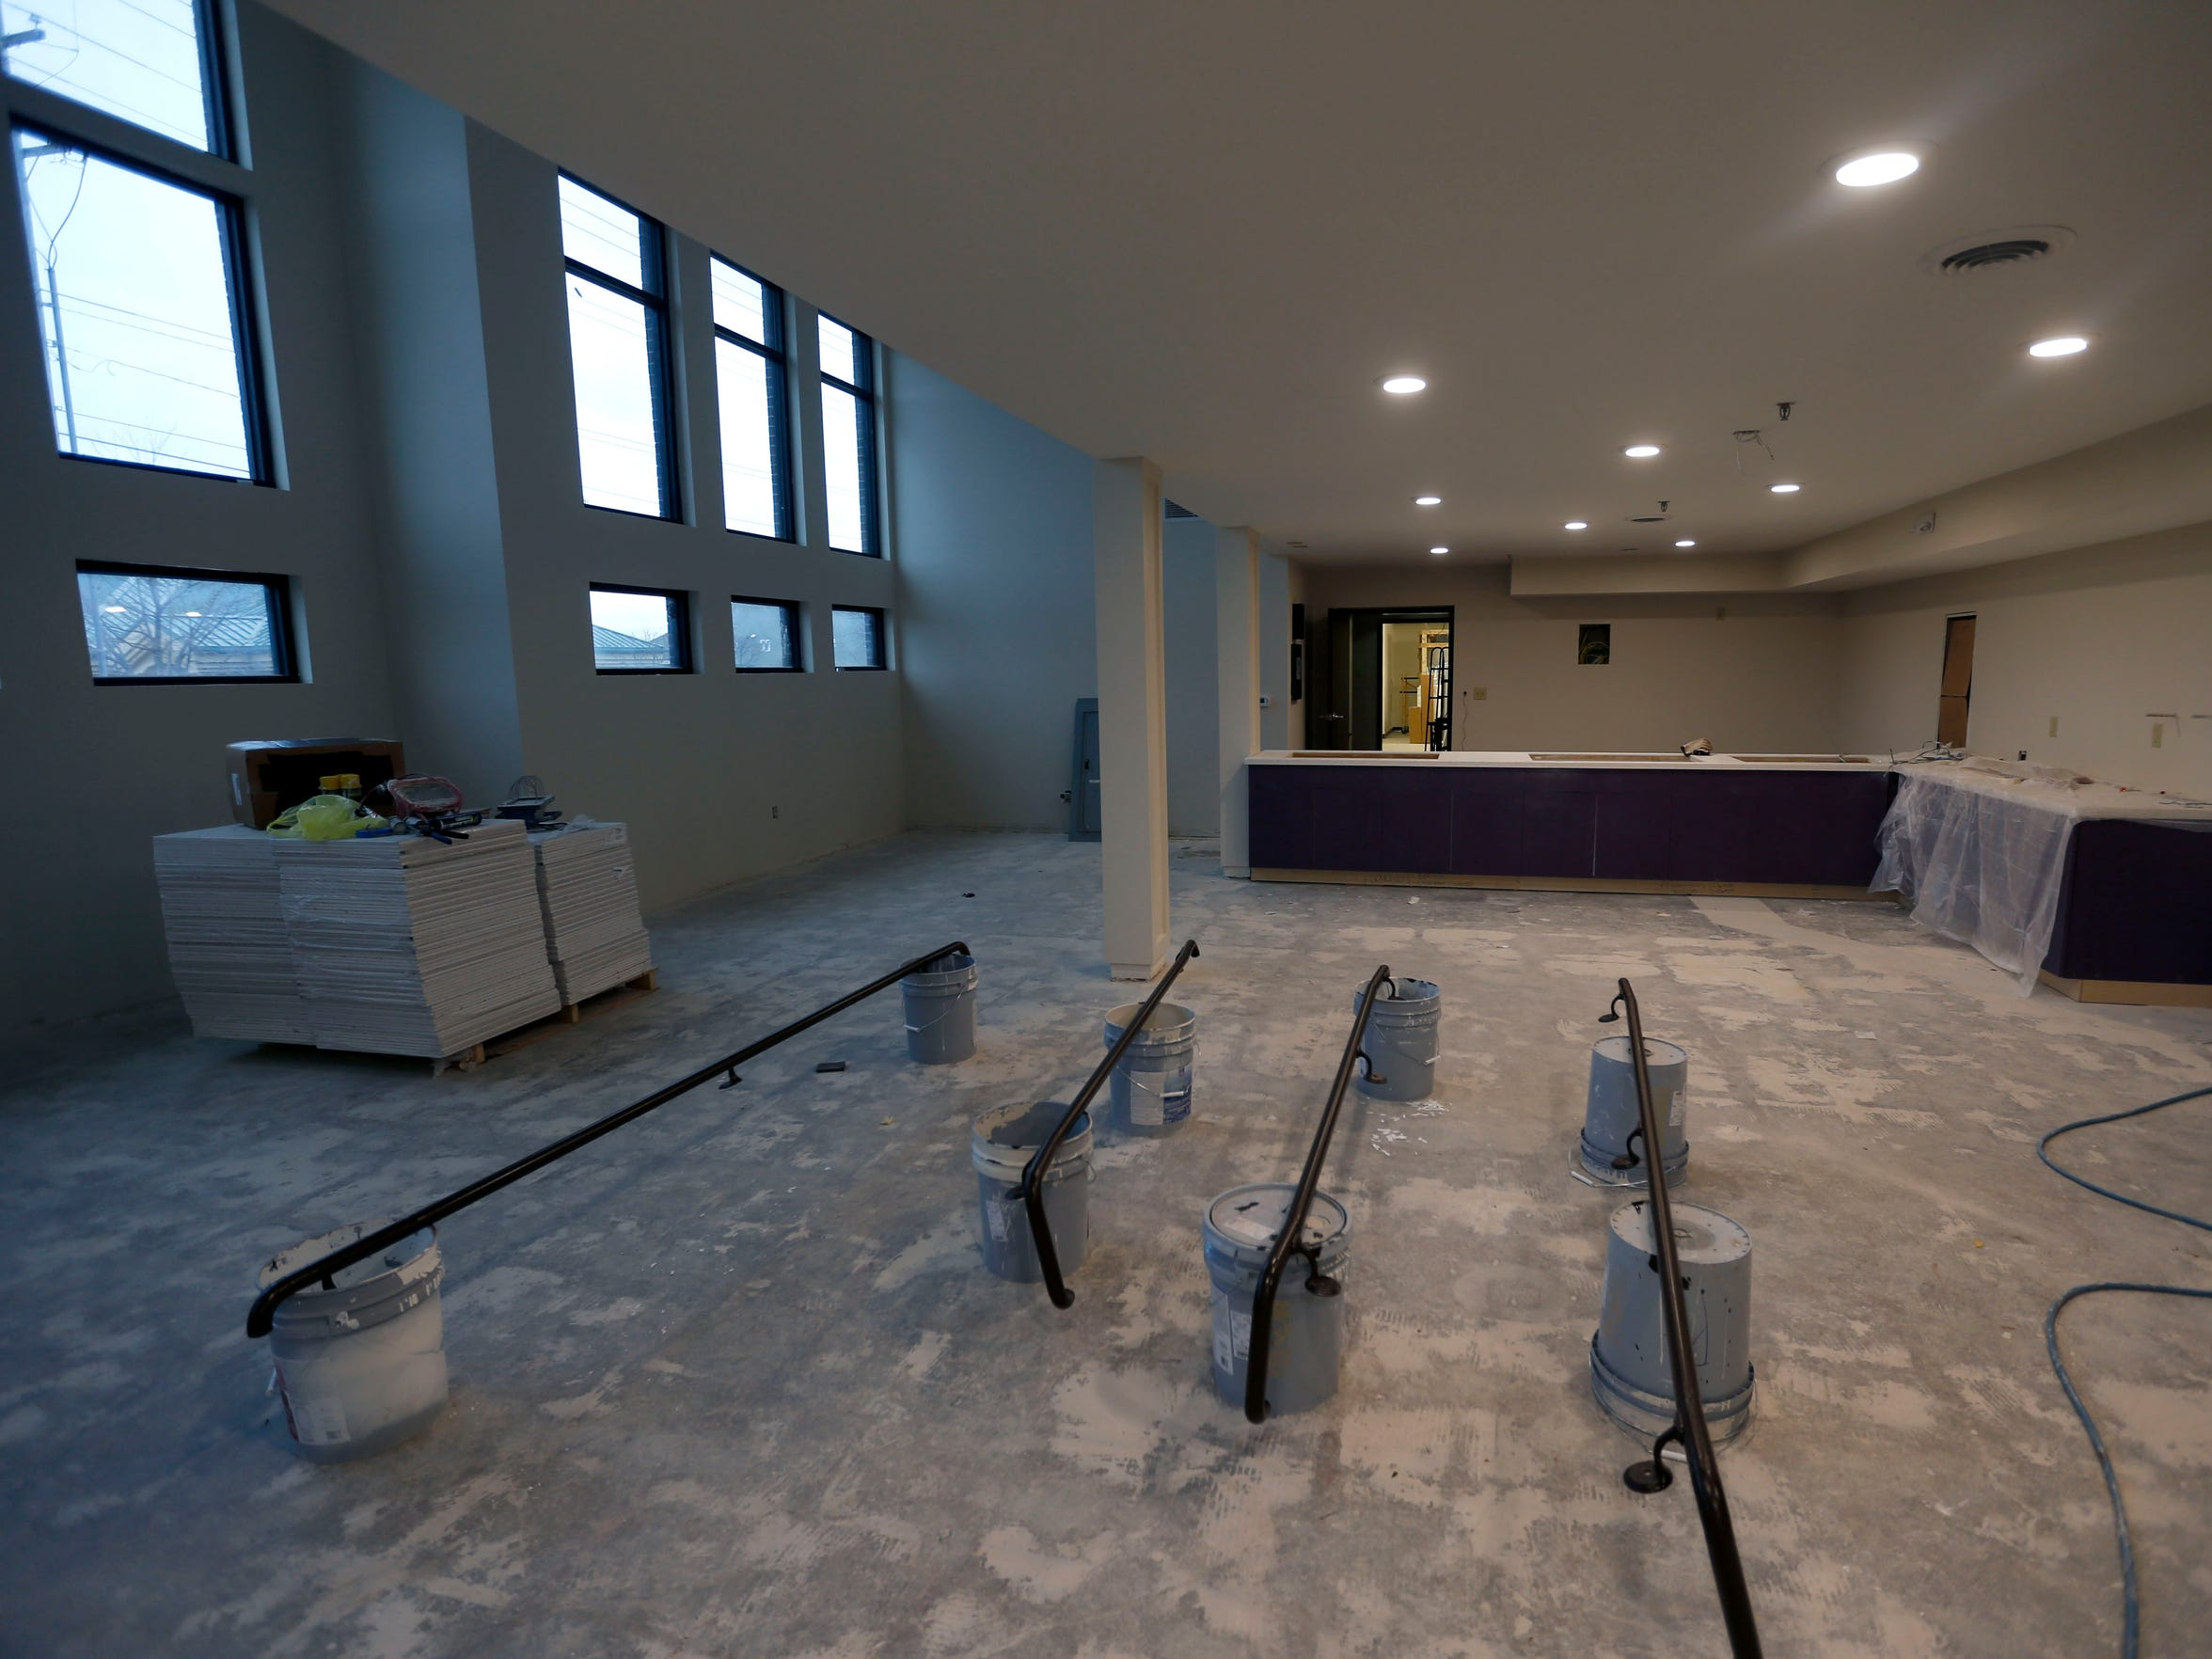 The new dining area at the future home of Harmony House